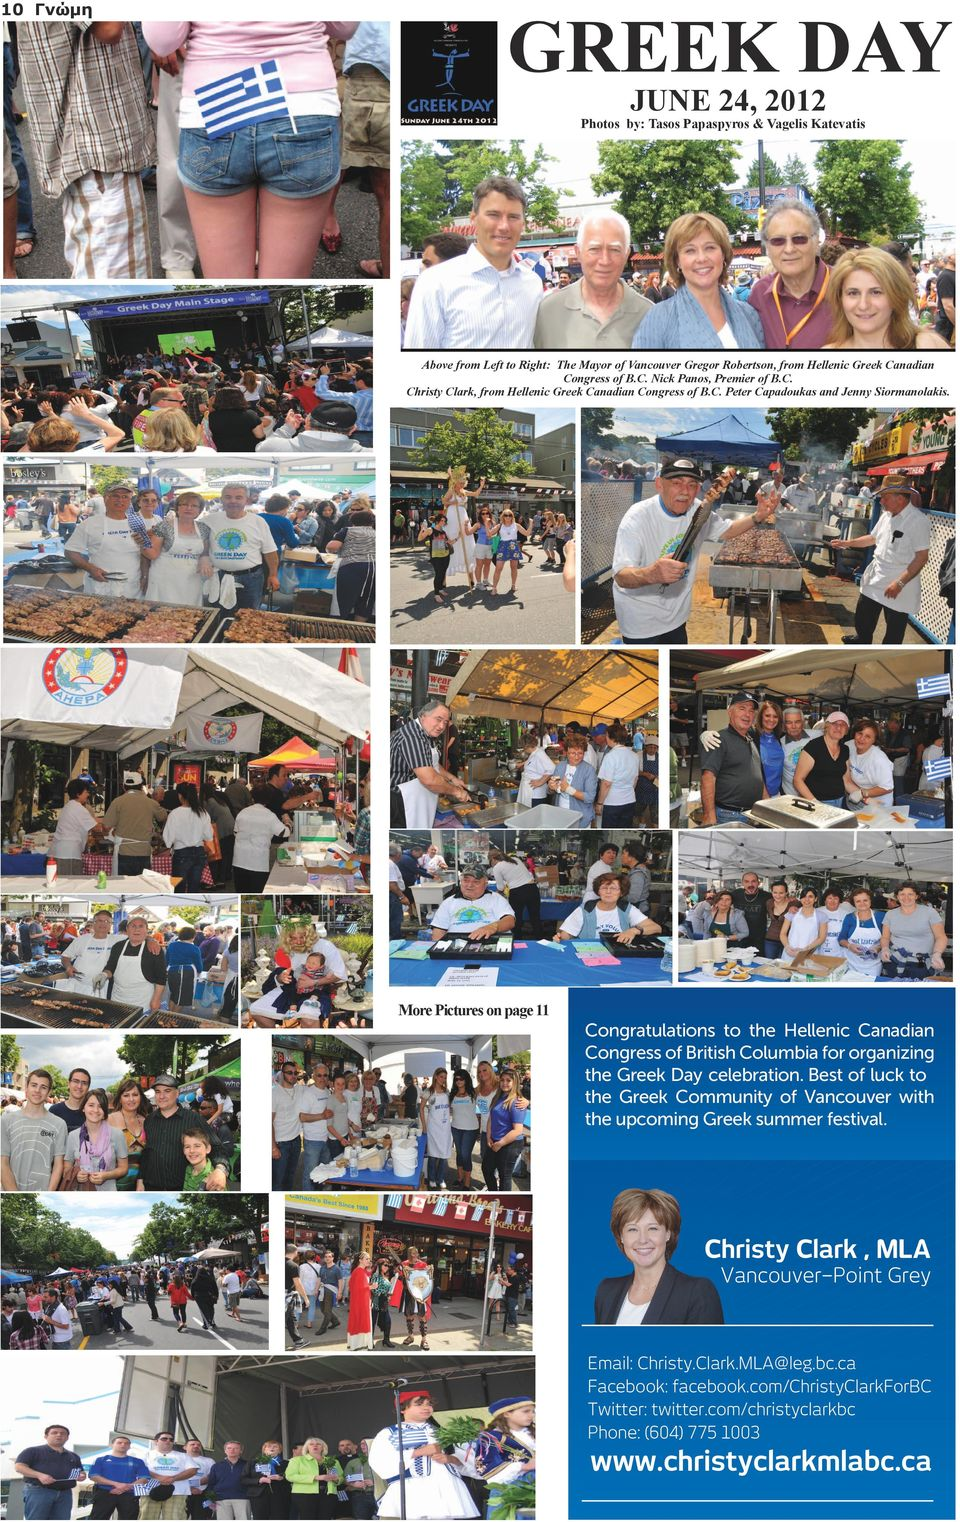 More Pictures on page 11 Congratulations to the Hellenic Canadian Congress of British Columbia for organizing the Greek Day celebration.